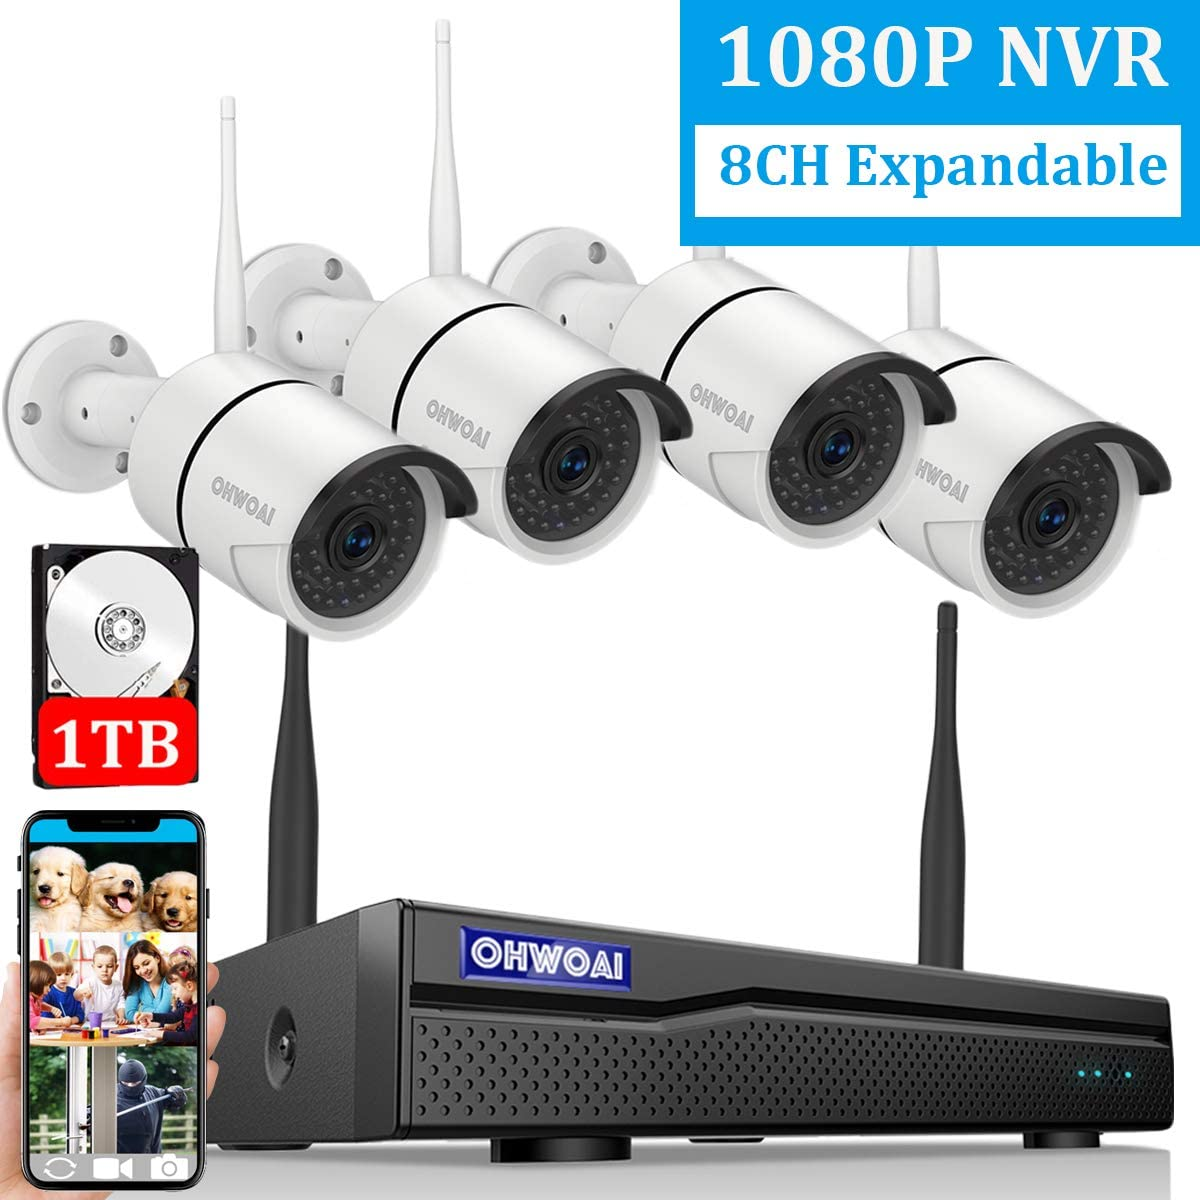 2019 New 8CH Expandable OHWOAI Security Camera System Wireless, 8CH 1080P NVR, 4Pcs 720P HD Outdoor Indoor IP Cameras,Home CCTV Surveillance System 1TB Hard Drive Waterproof,Remote Access,Plug Play